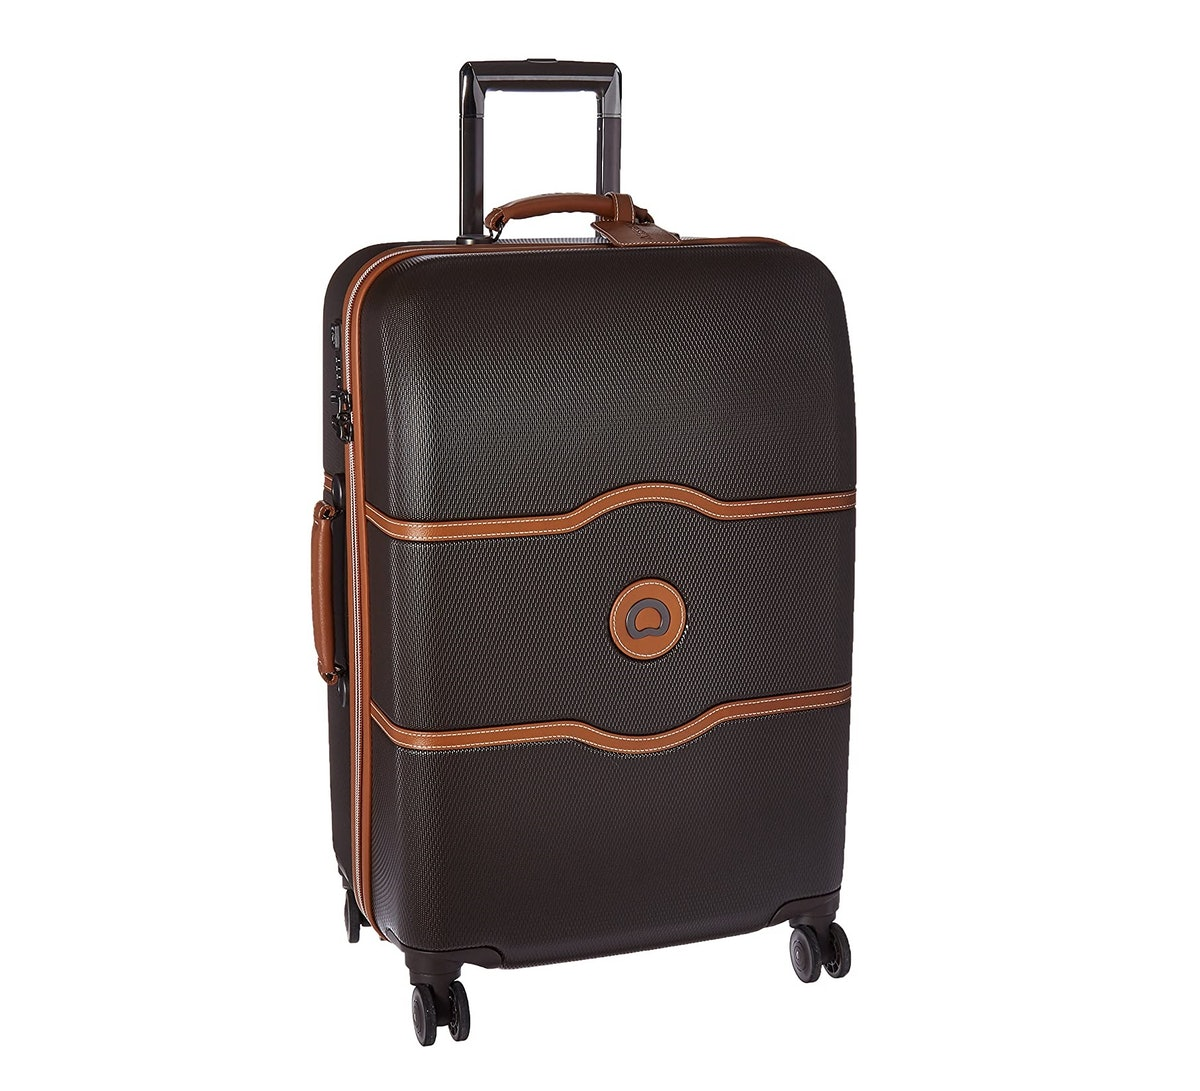 DELSEY Paris Chatelet Hardside Luggage, 24-Inch